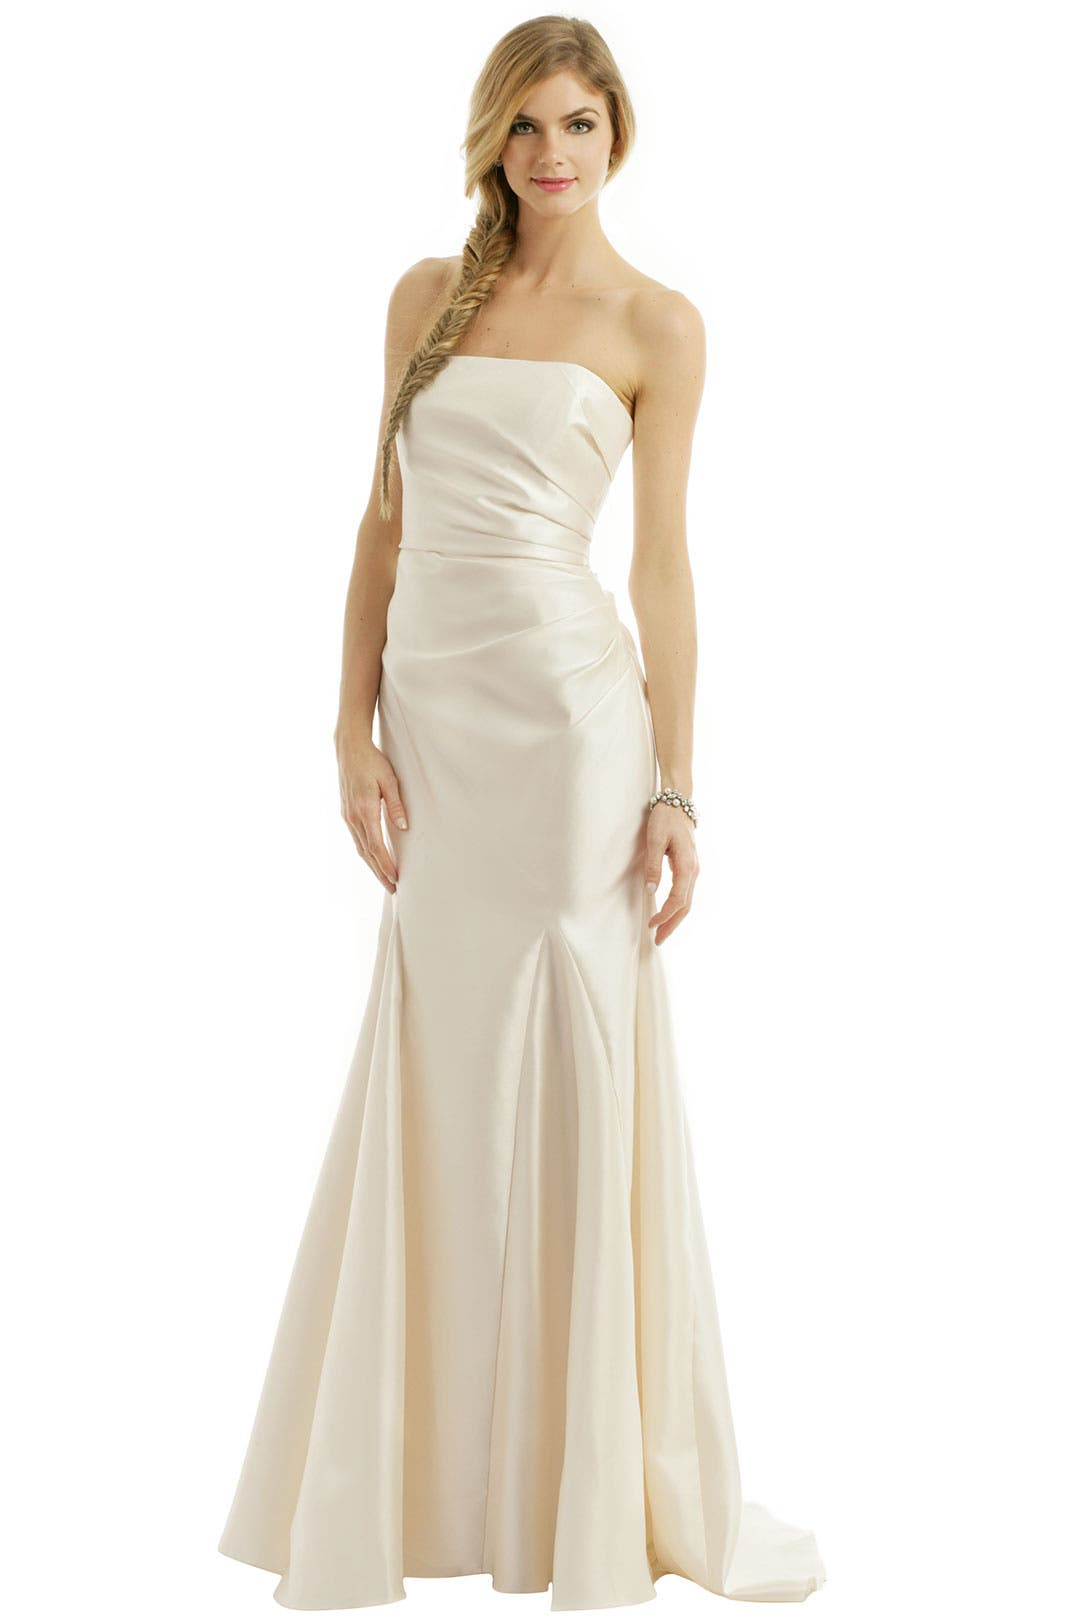 Ivory Dream Gown by Badgley Mischka